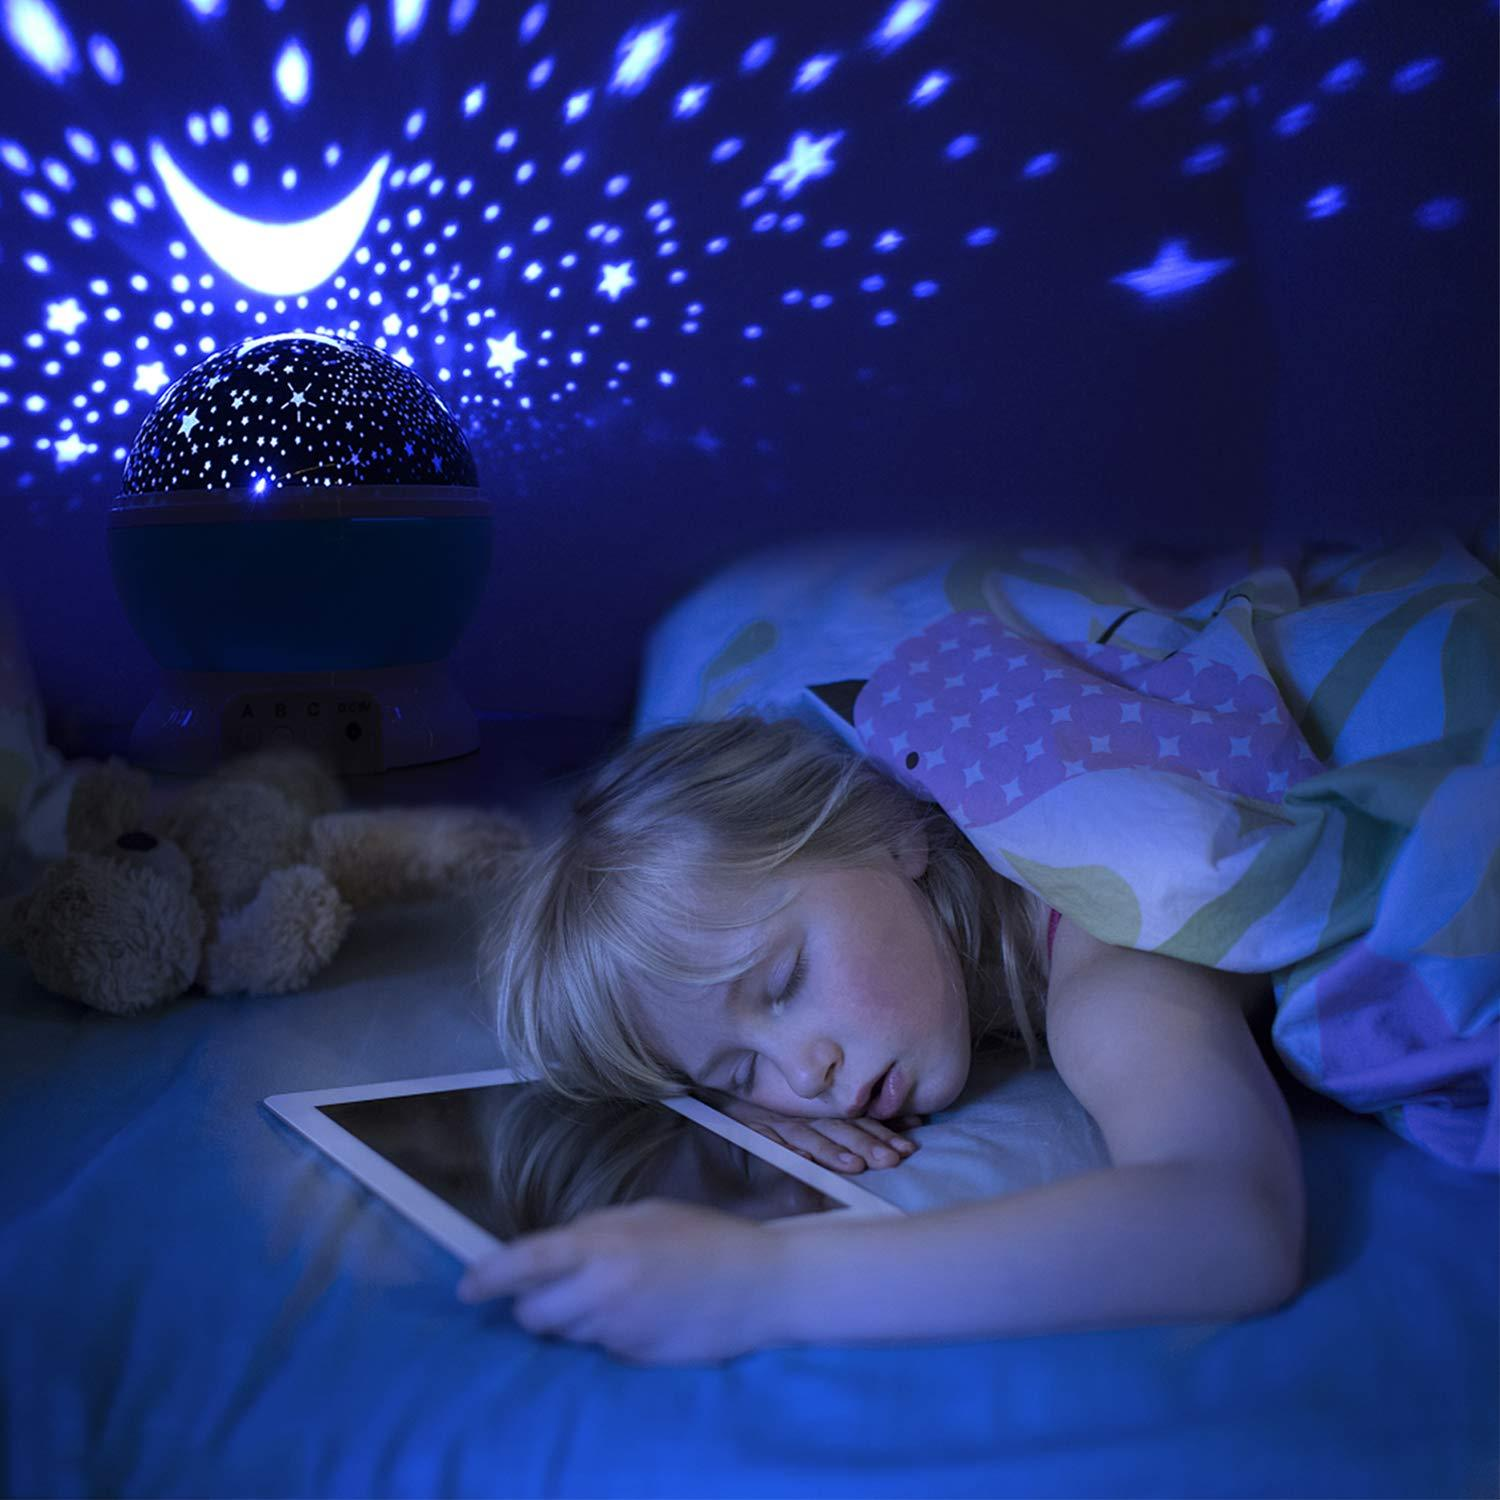 50% OFF ONLY TODAY - Starry Sky Night Light Projector